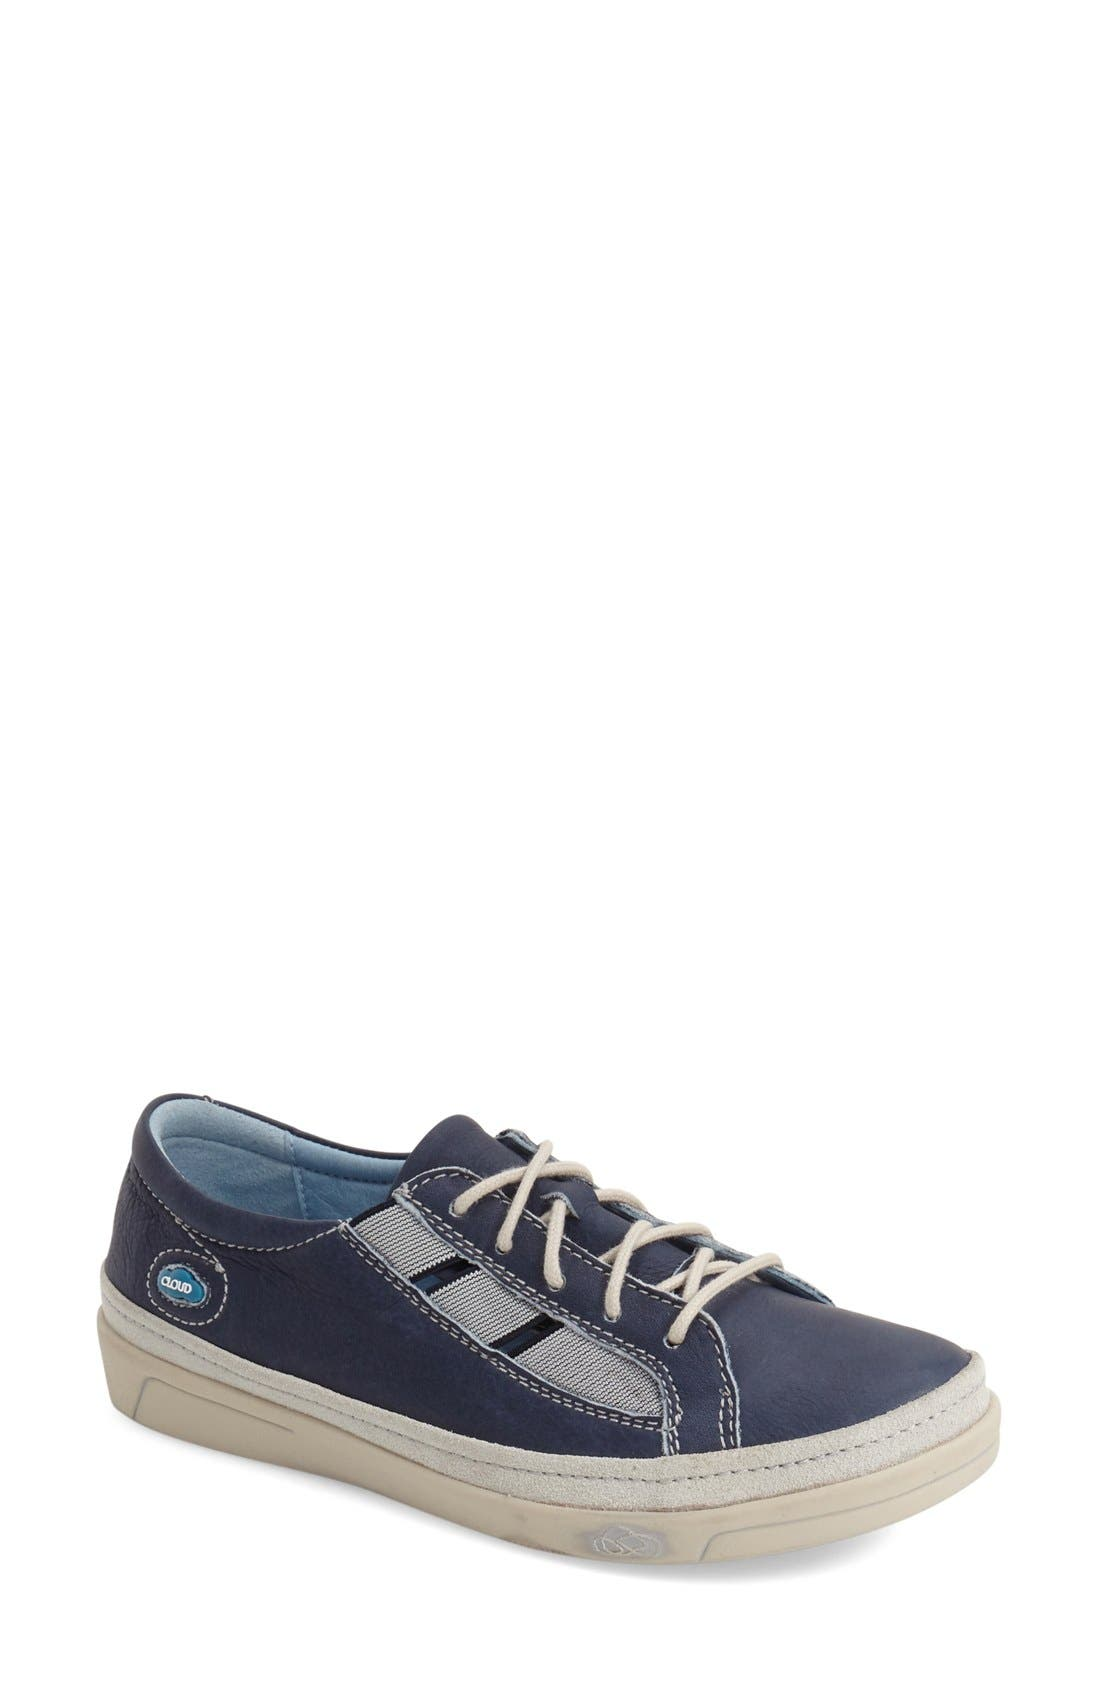 'Amazonas' Leather Sneaker,                             Main thumbnail 1, color,                             BLUE LEATHER